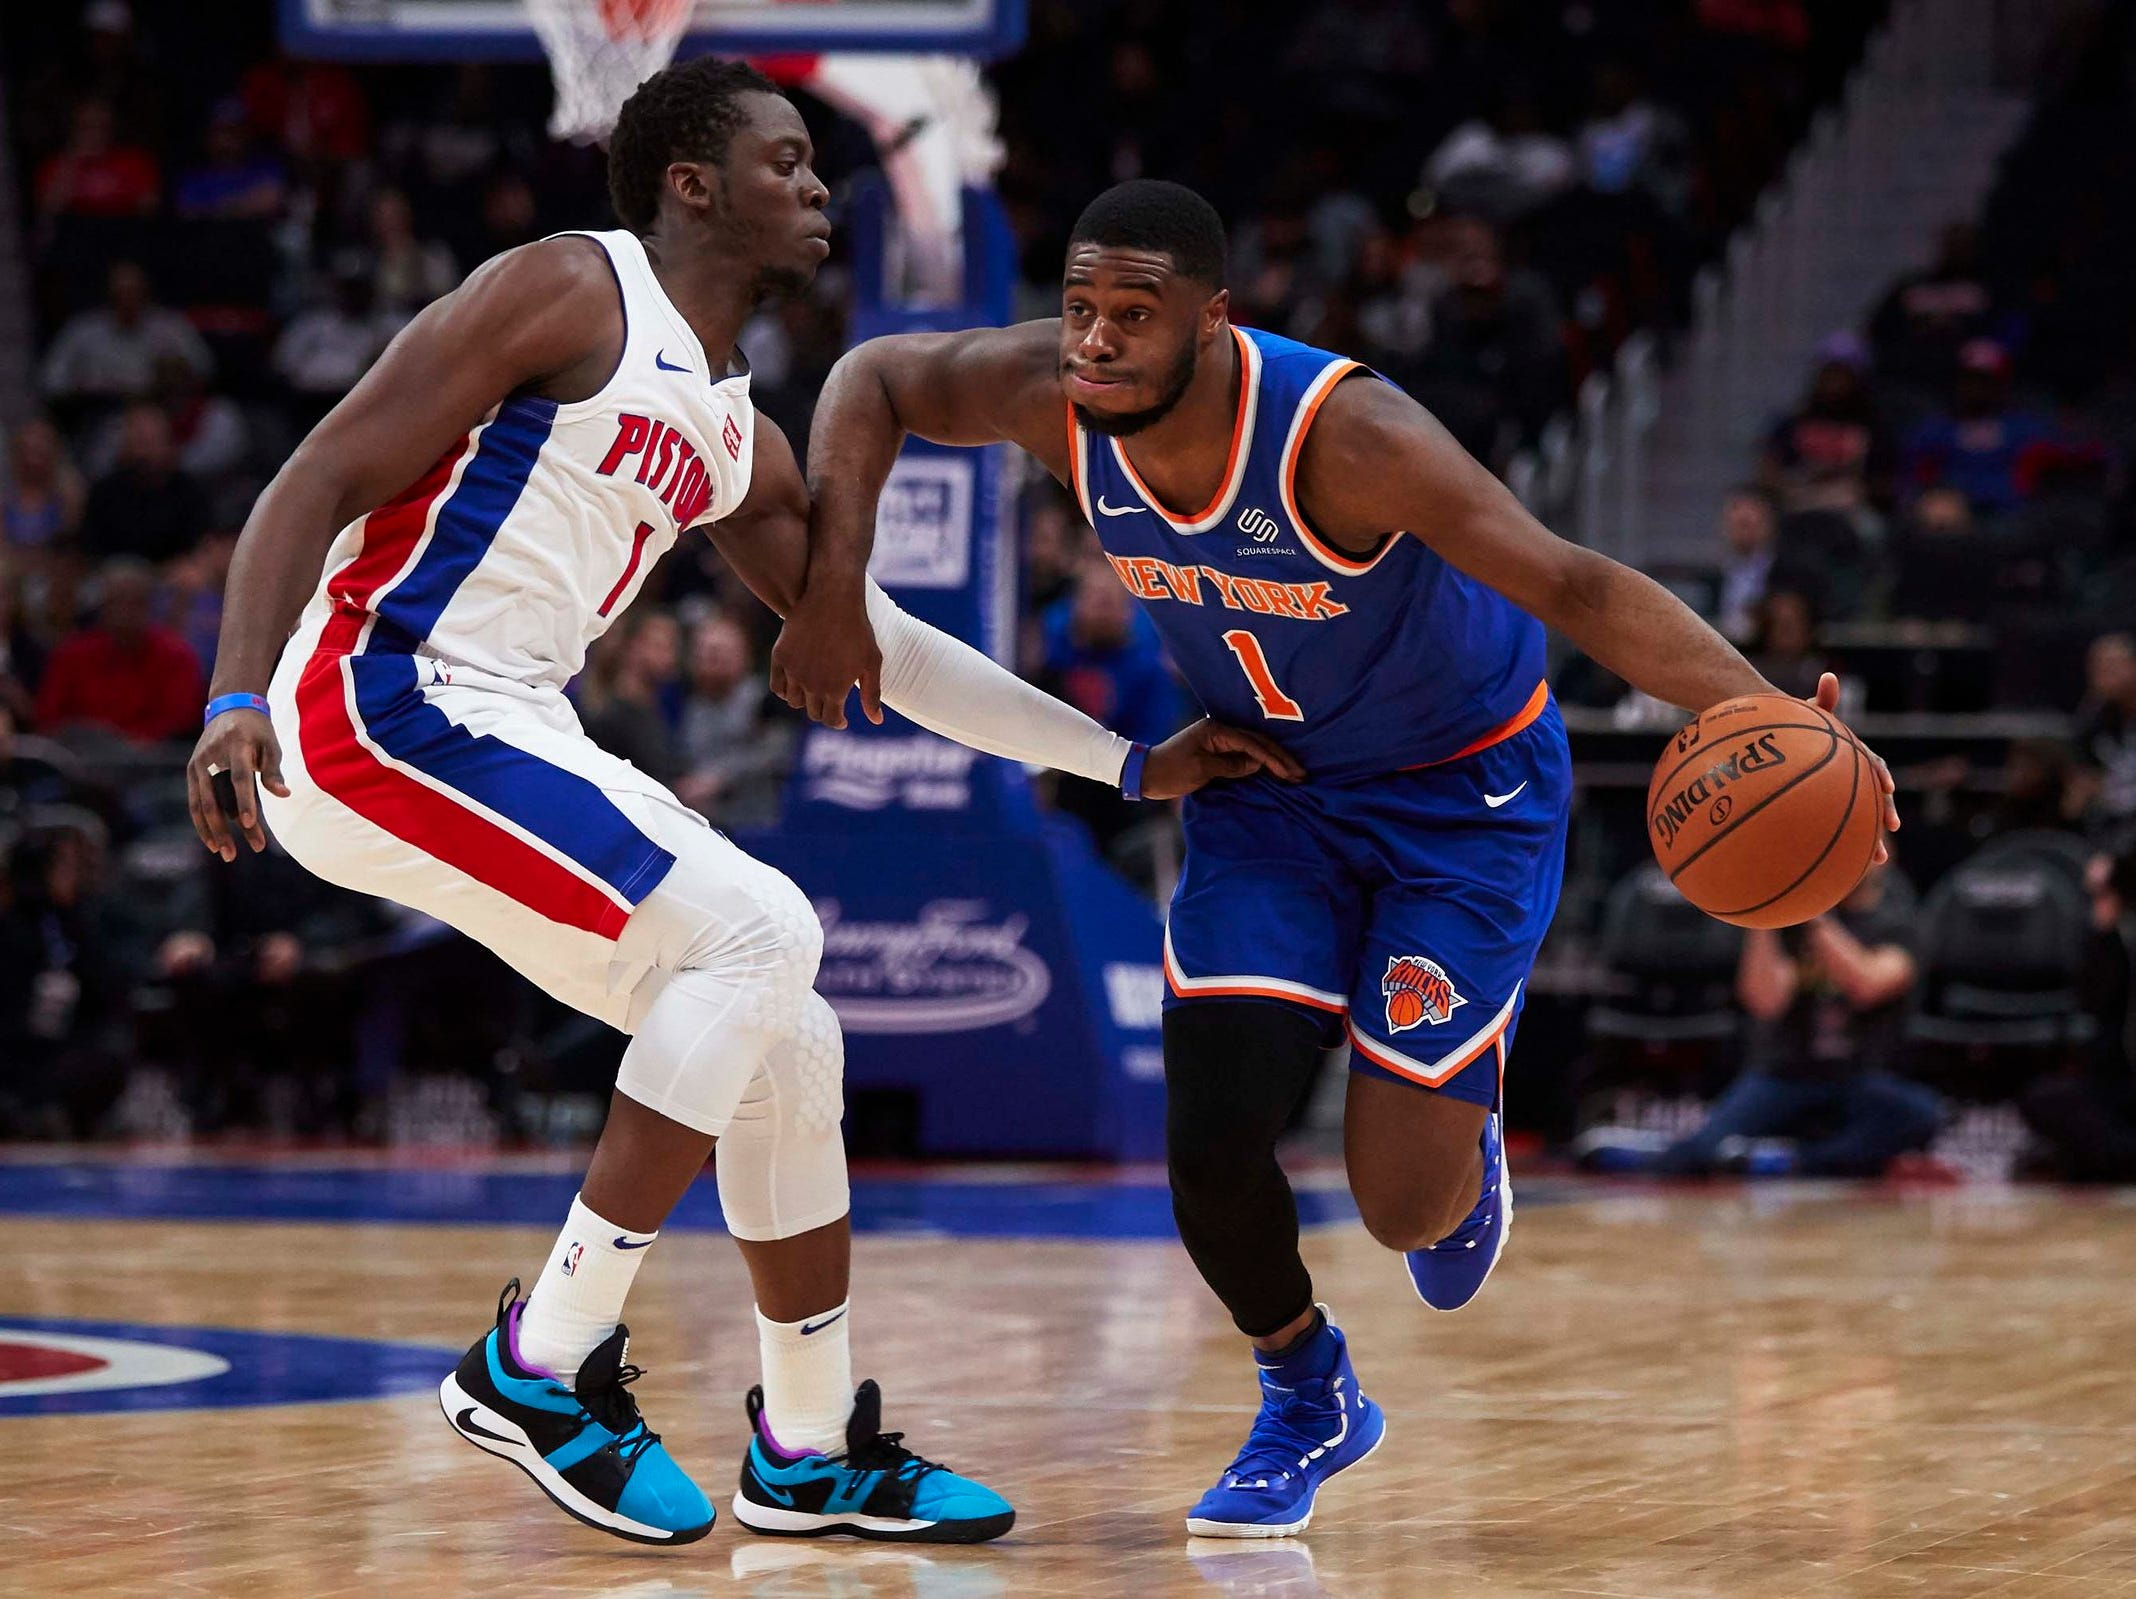 New York Knicks guard Emmanuel Mudiay (1) dribbles defended by Detroit Pistons guard Reggie Jackson (1) in the second half at Little Caesars Arena.